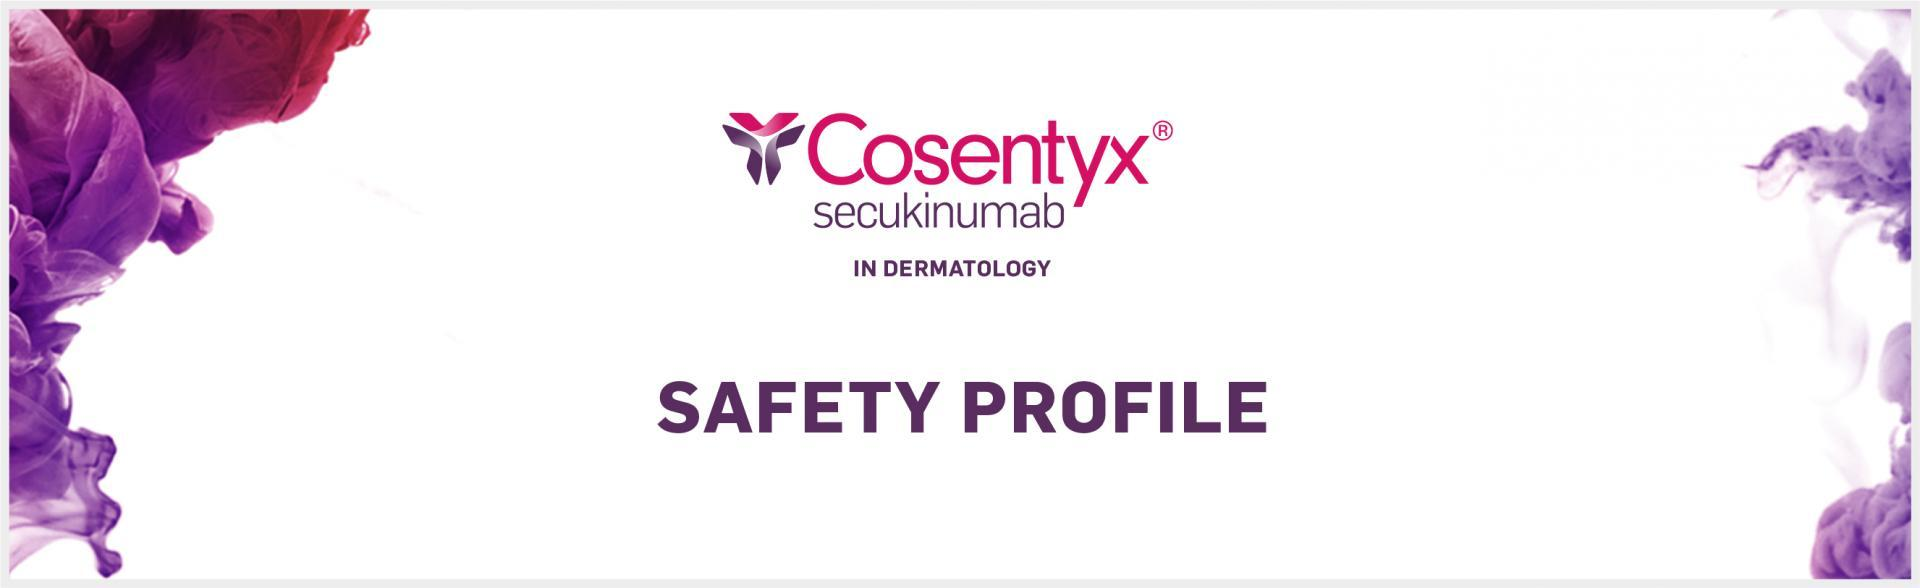 Top Banner: Safety profile